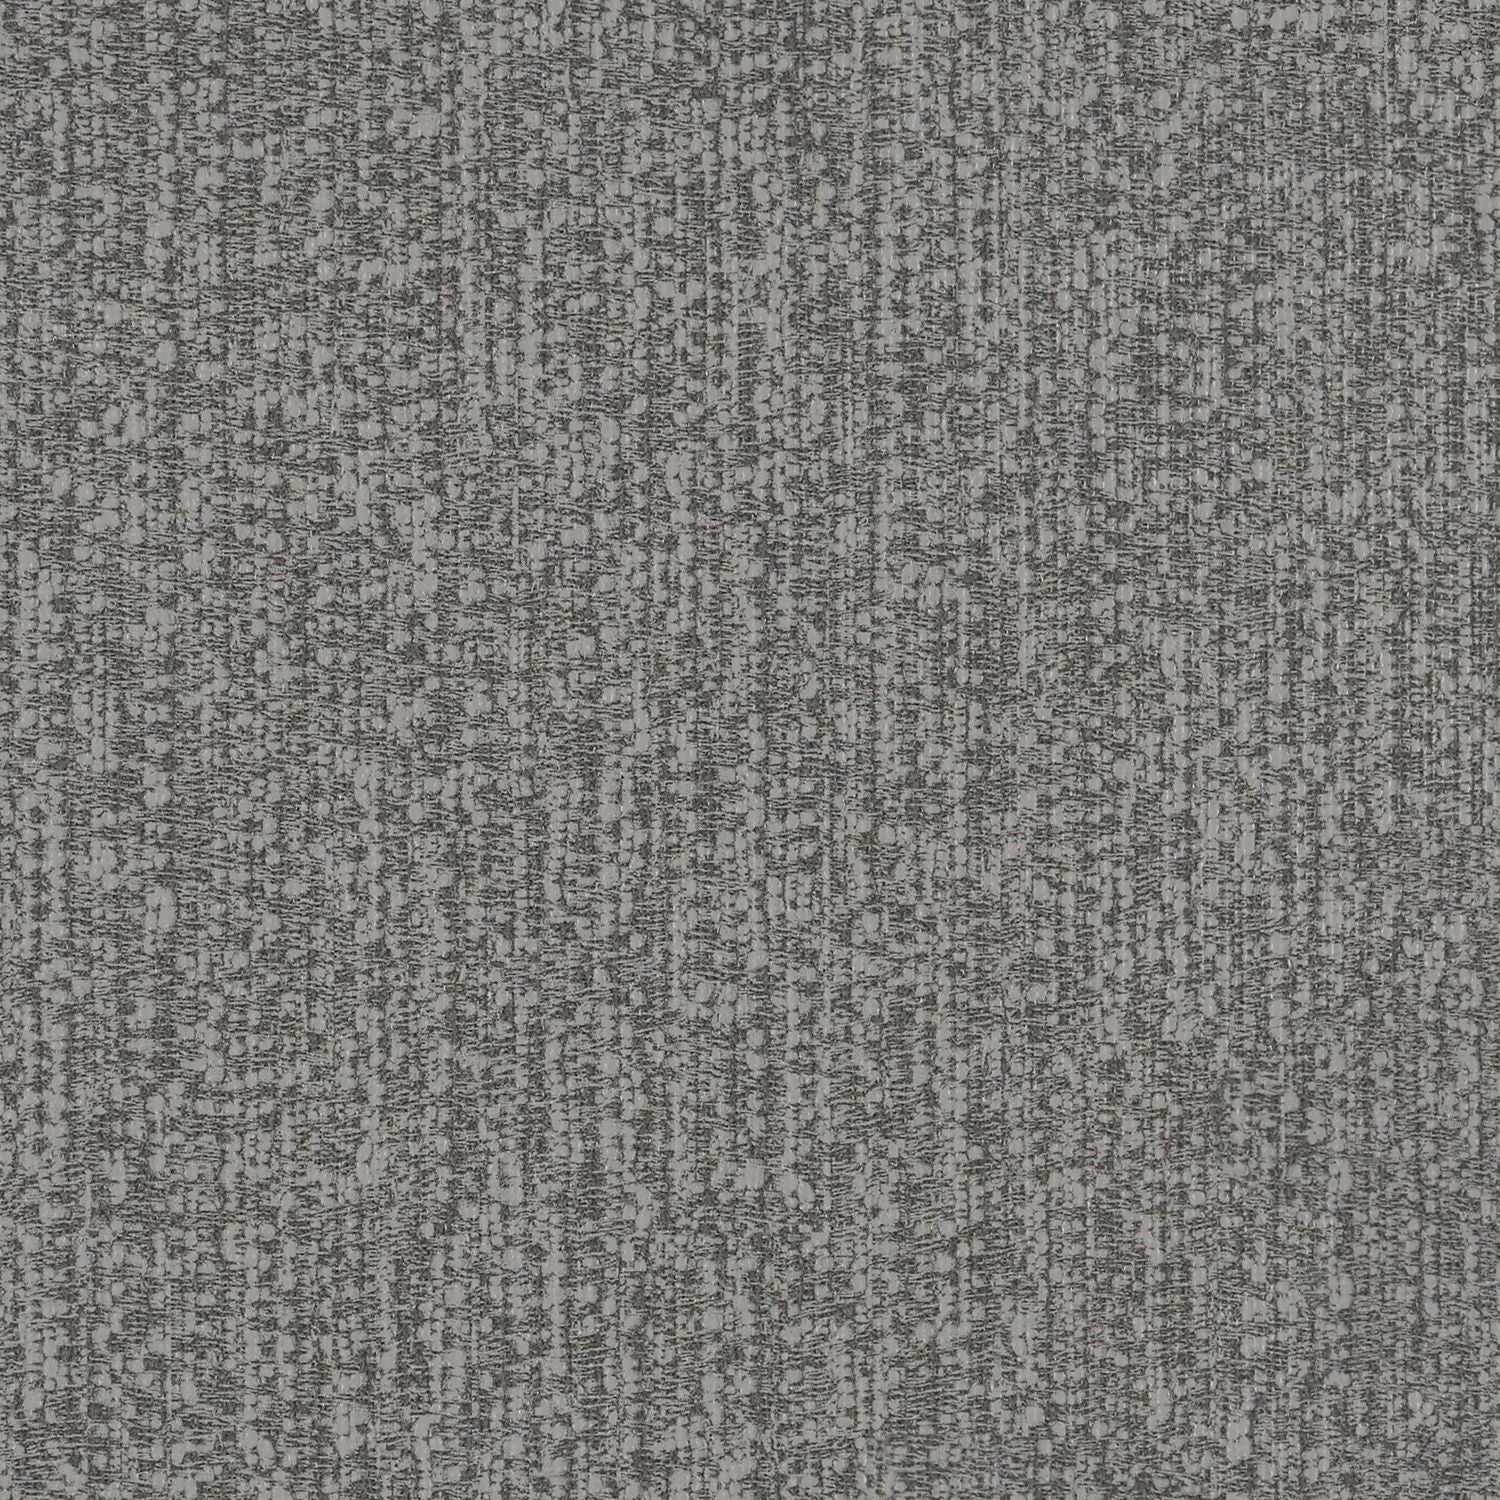 Monotex - Grey Flannel - 4053 - 03